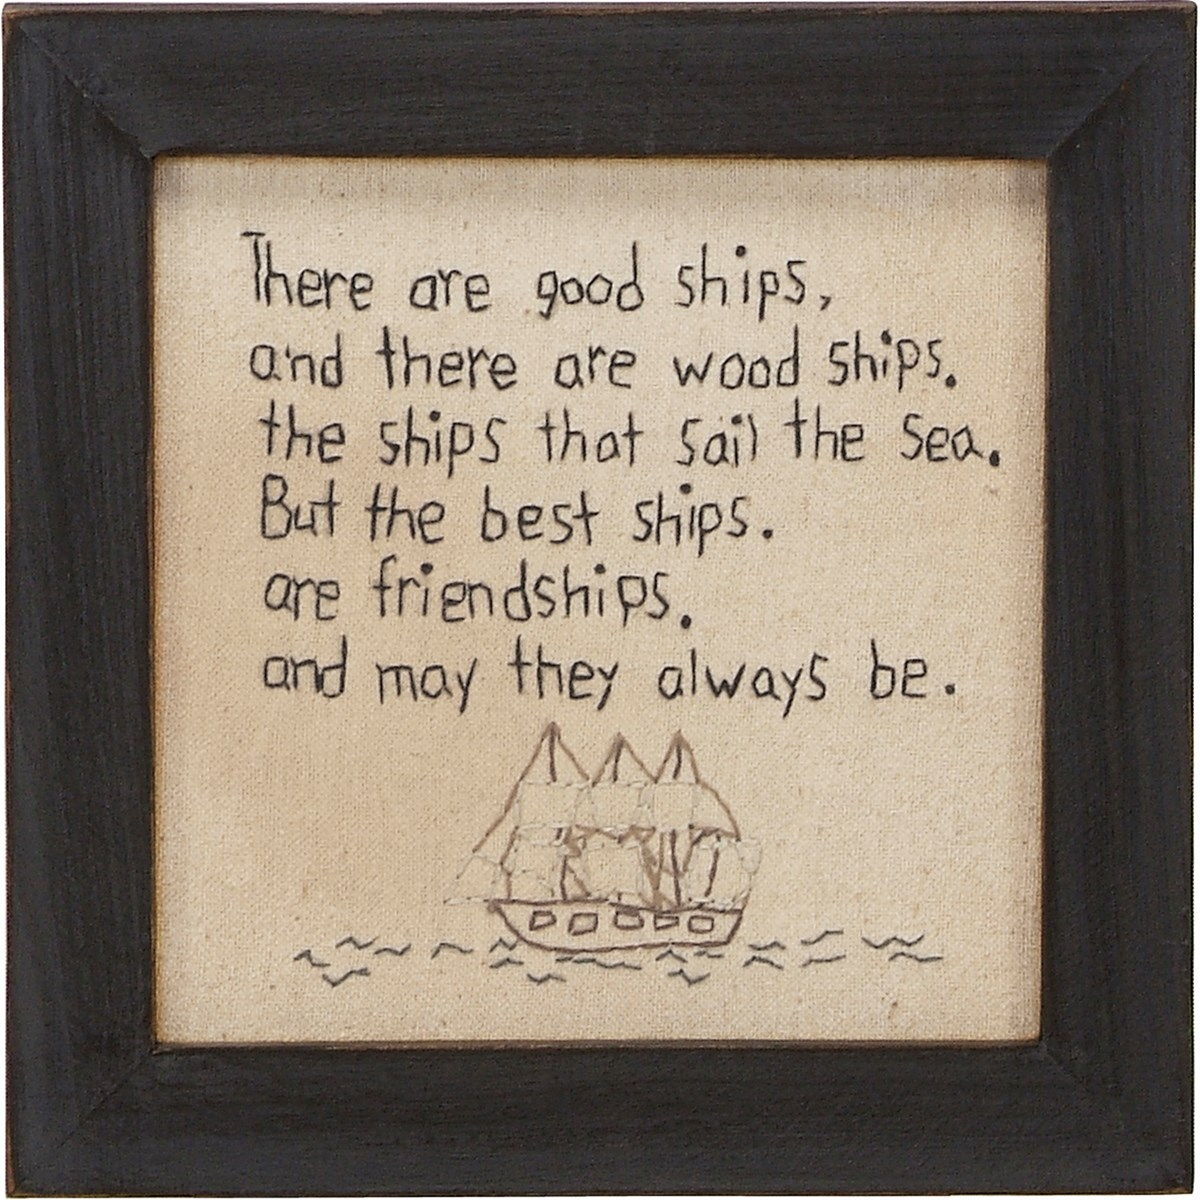 "Stitchery - There Are Good Ships - 7.75"" x 7.75"" x 0.75"" - Fabric, Wood, Glass"